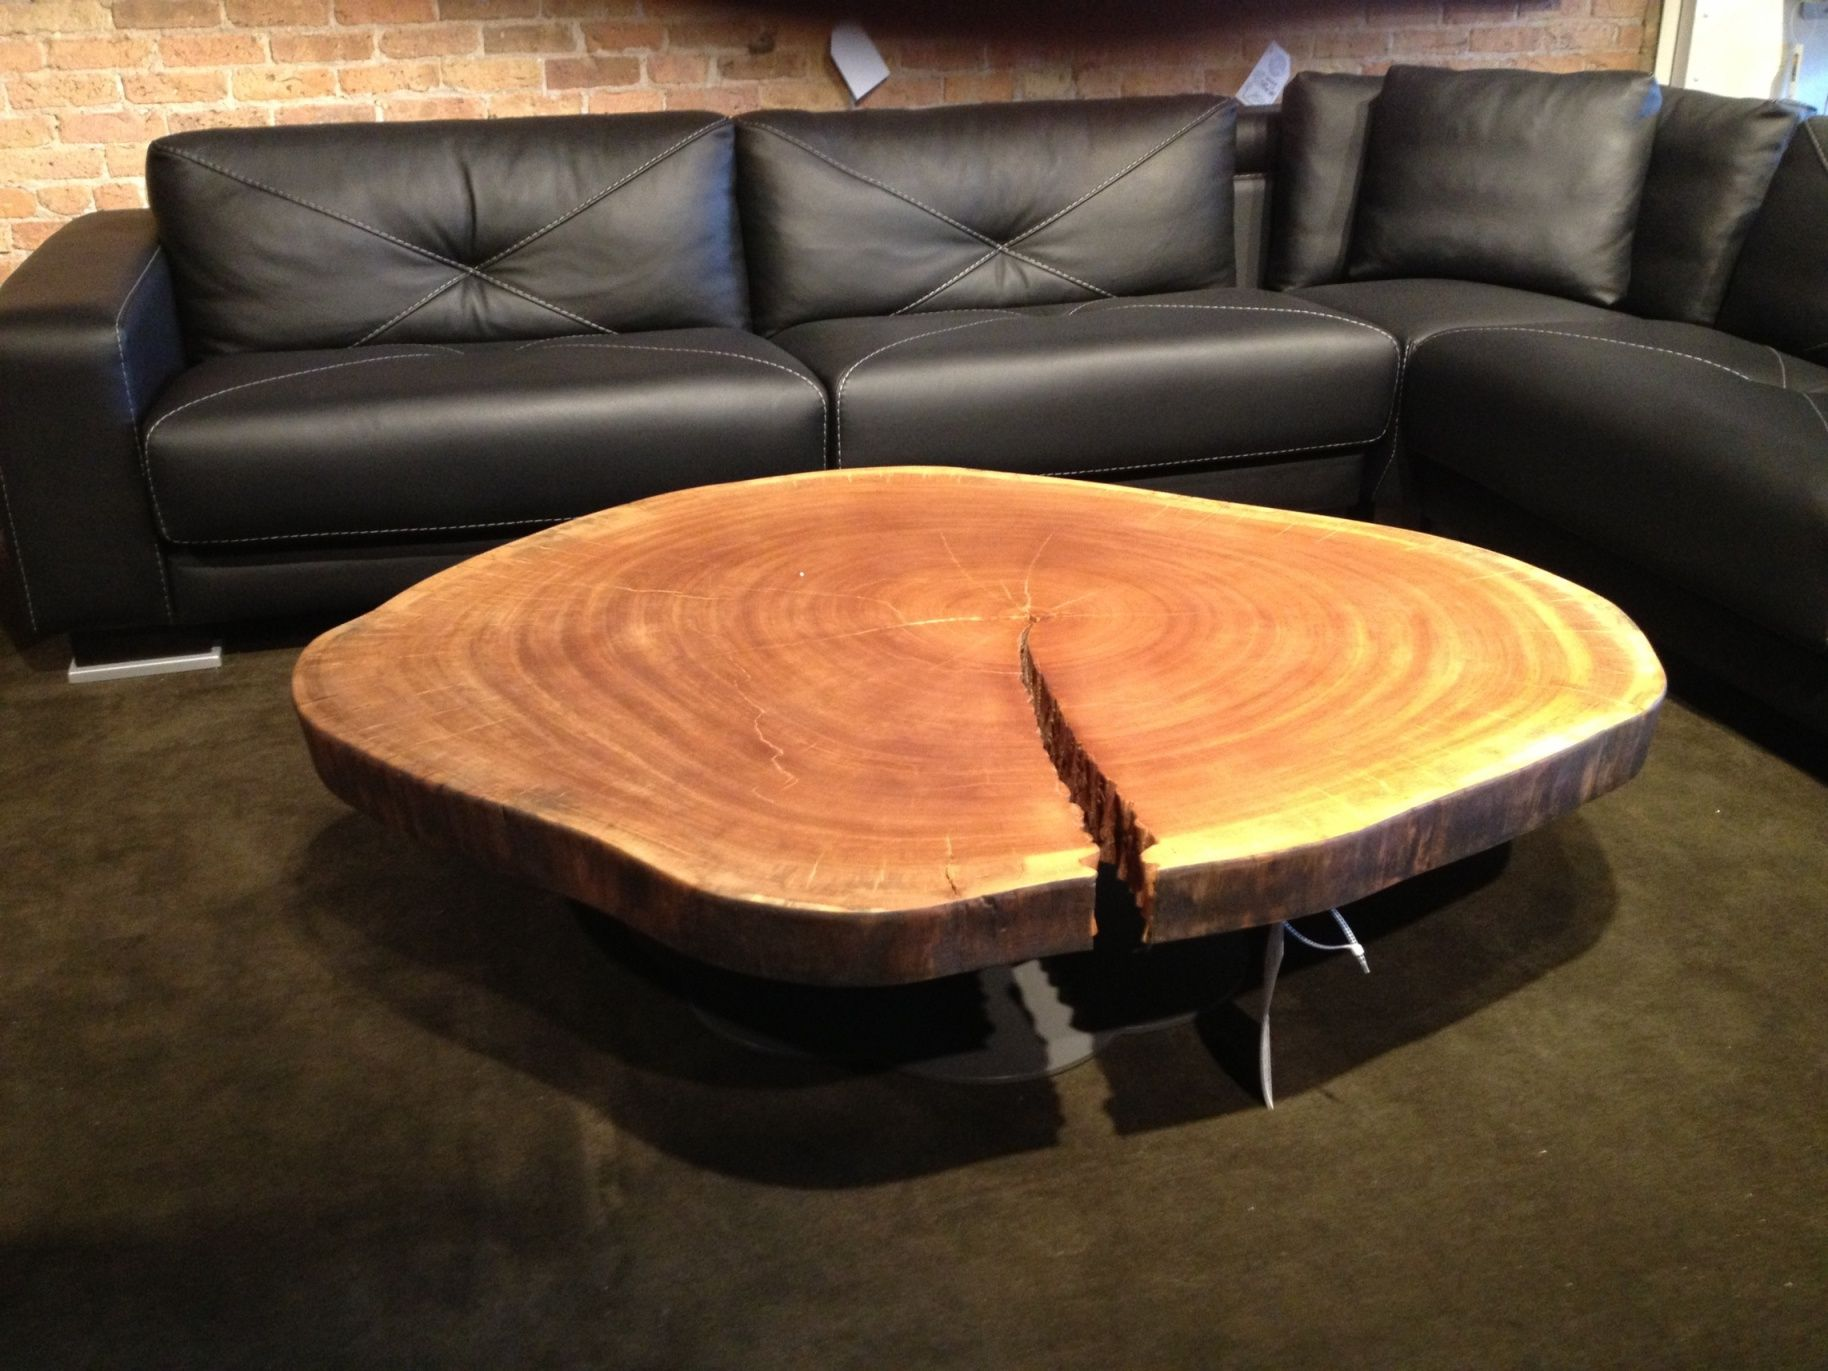 FurnitureTree Branch Coffee Table Black Sofas And Tree Coffee Table